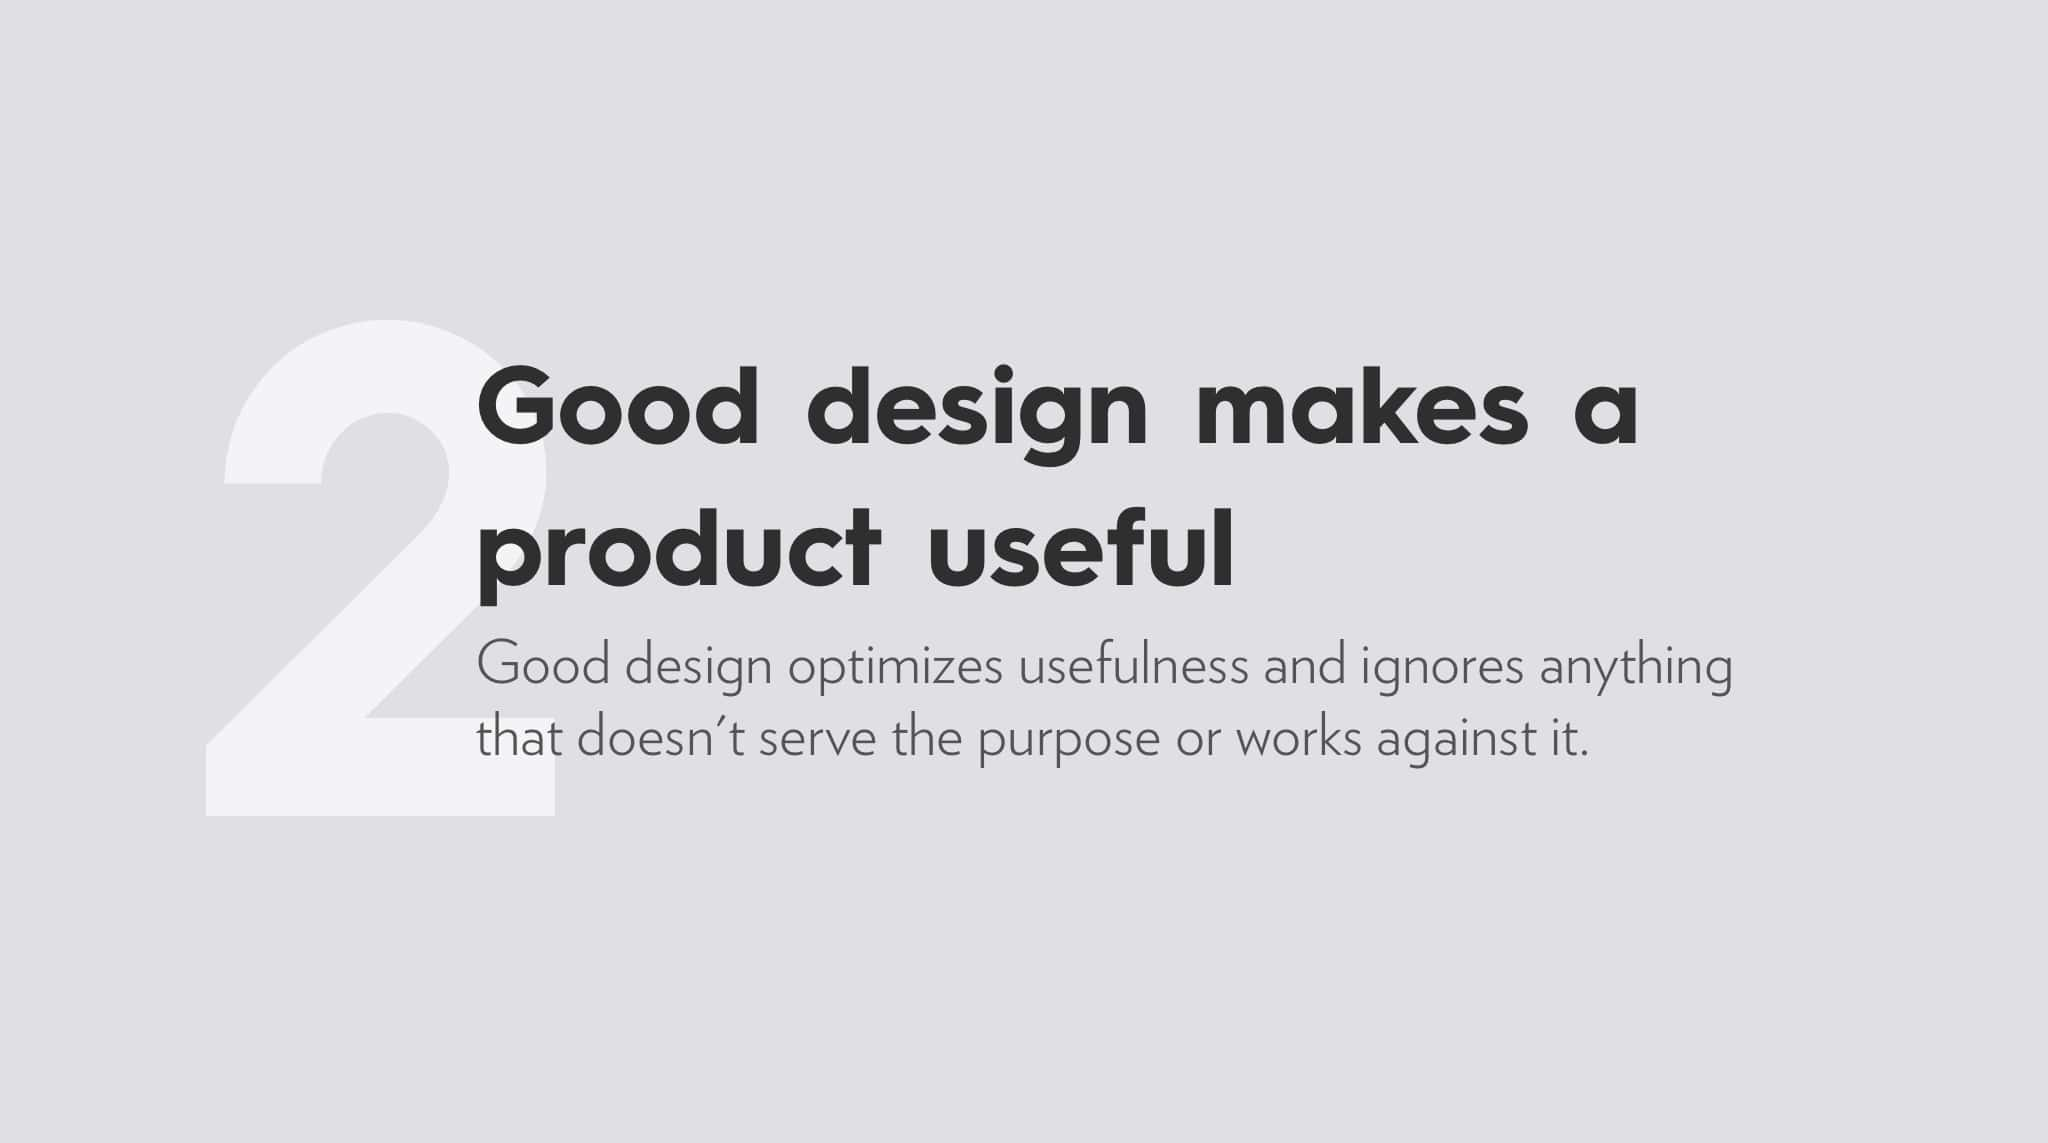 Ten Principles For Good Design by Dieter Rams, good design makes a product useful.